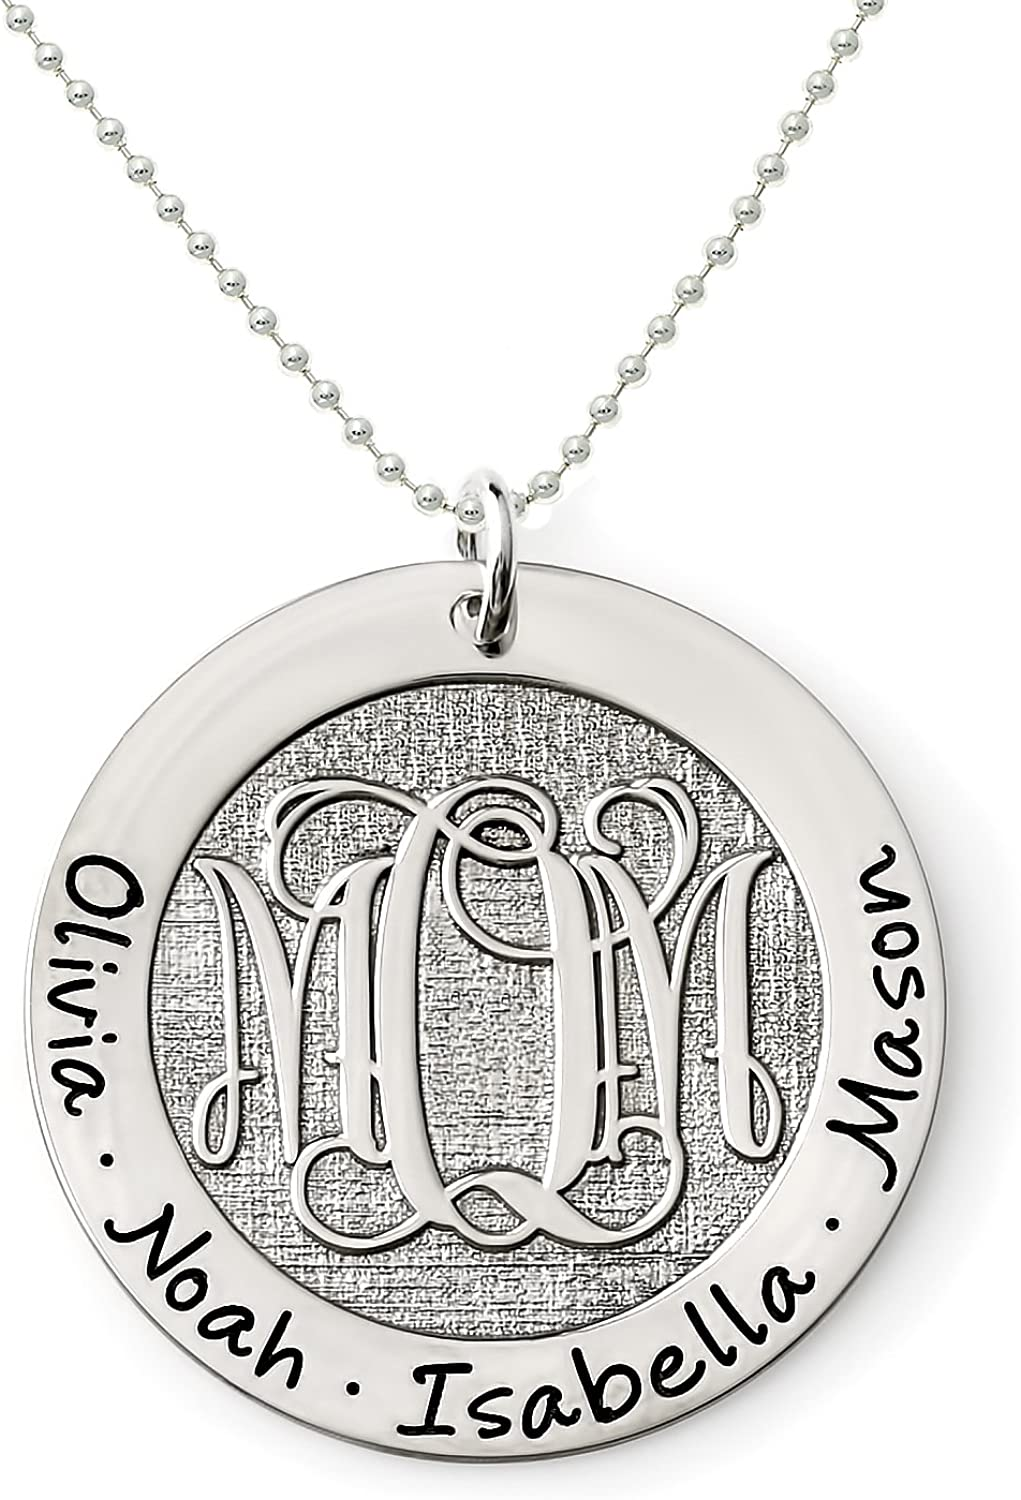 AJs Collection Personalized Beveled Customize Center Monogram and Names Choice of Chain Monogram Washer Name Necklace